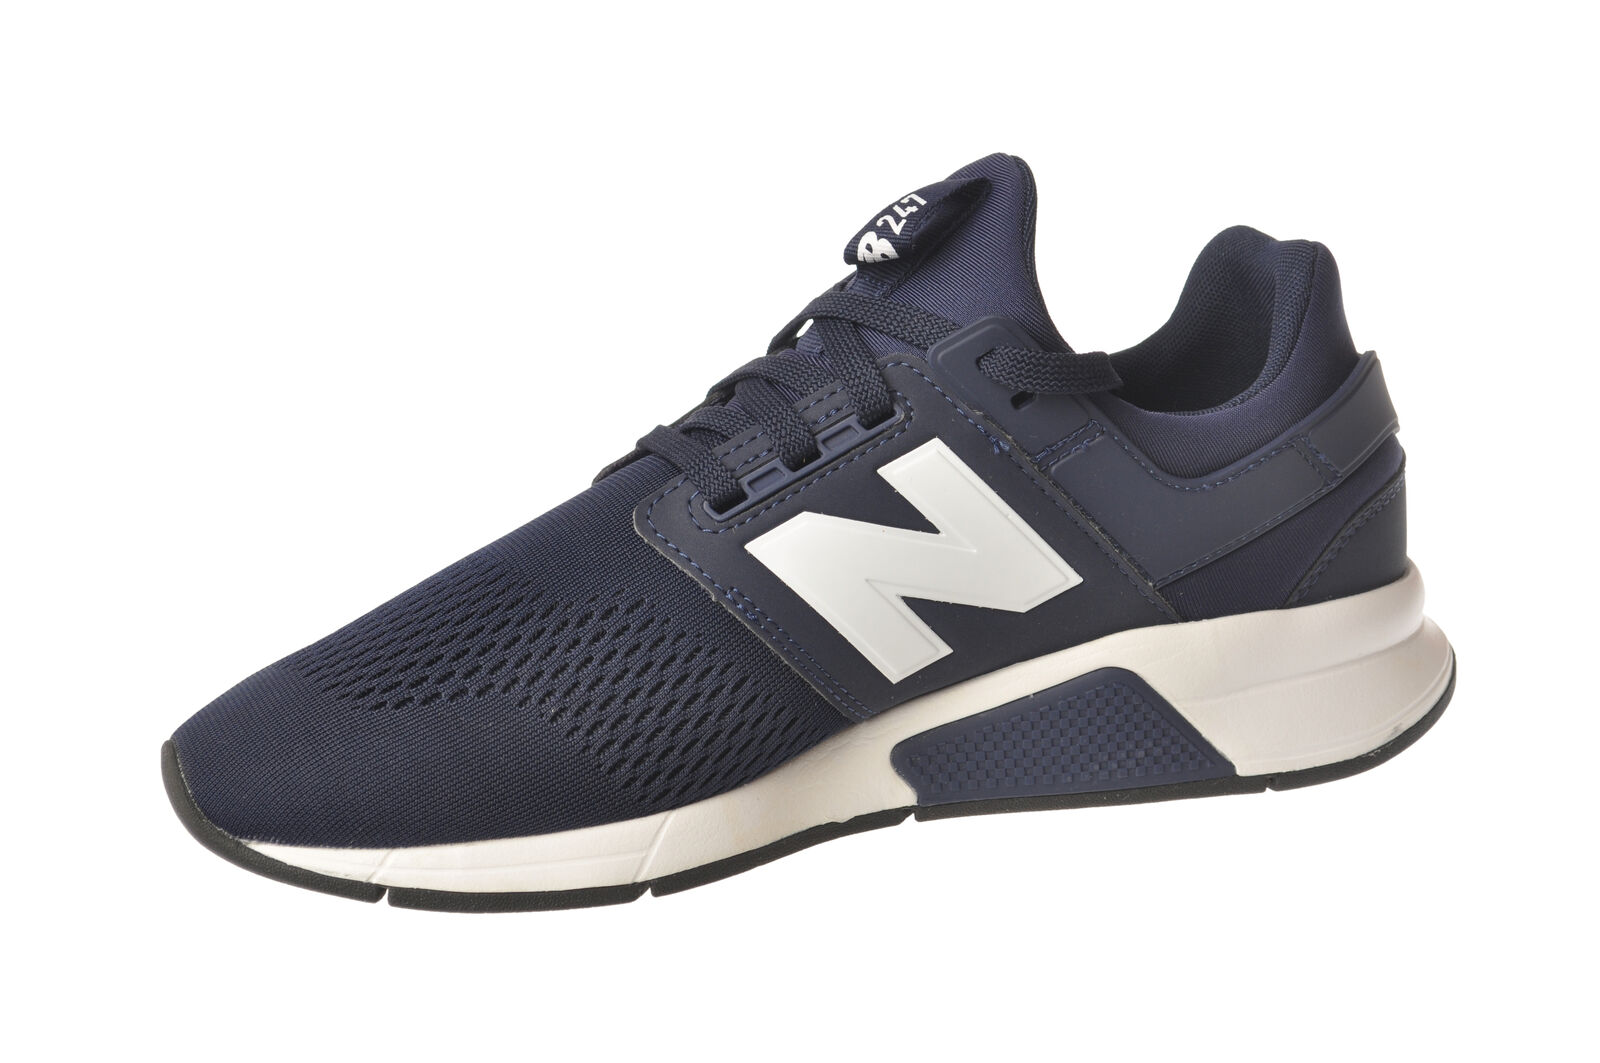 New Balance - - - shoes-Lace Up - Man - bluee - 5772621N180747 5b1c4a